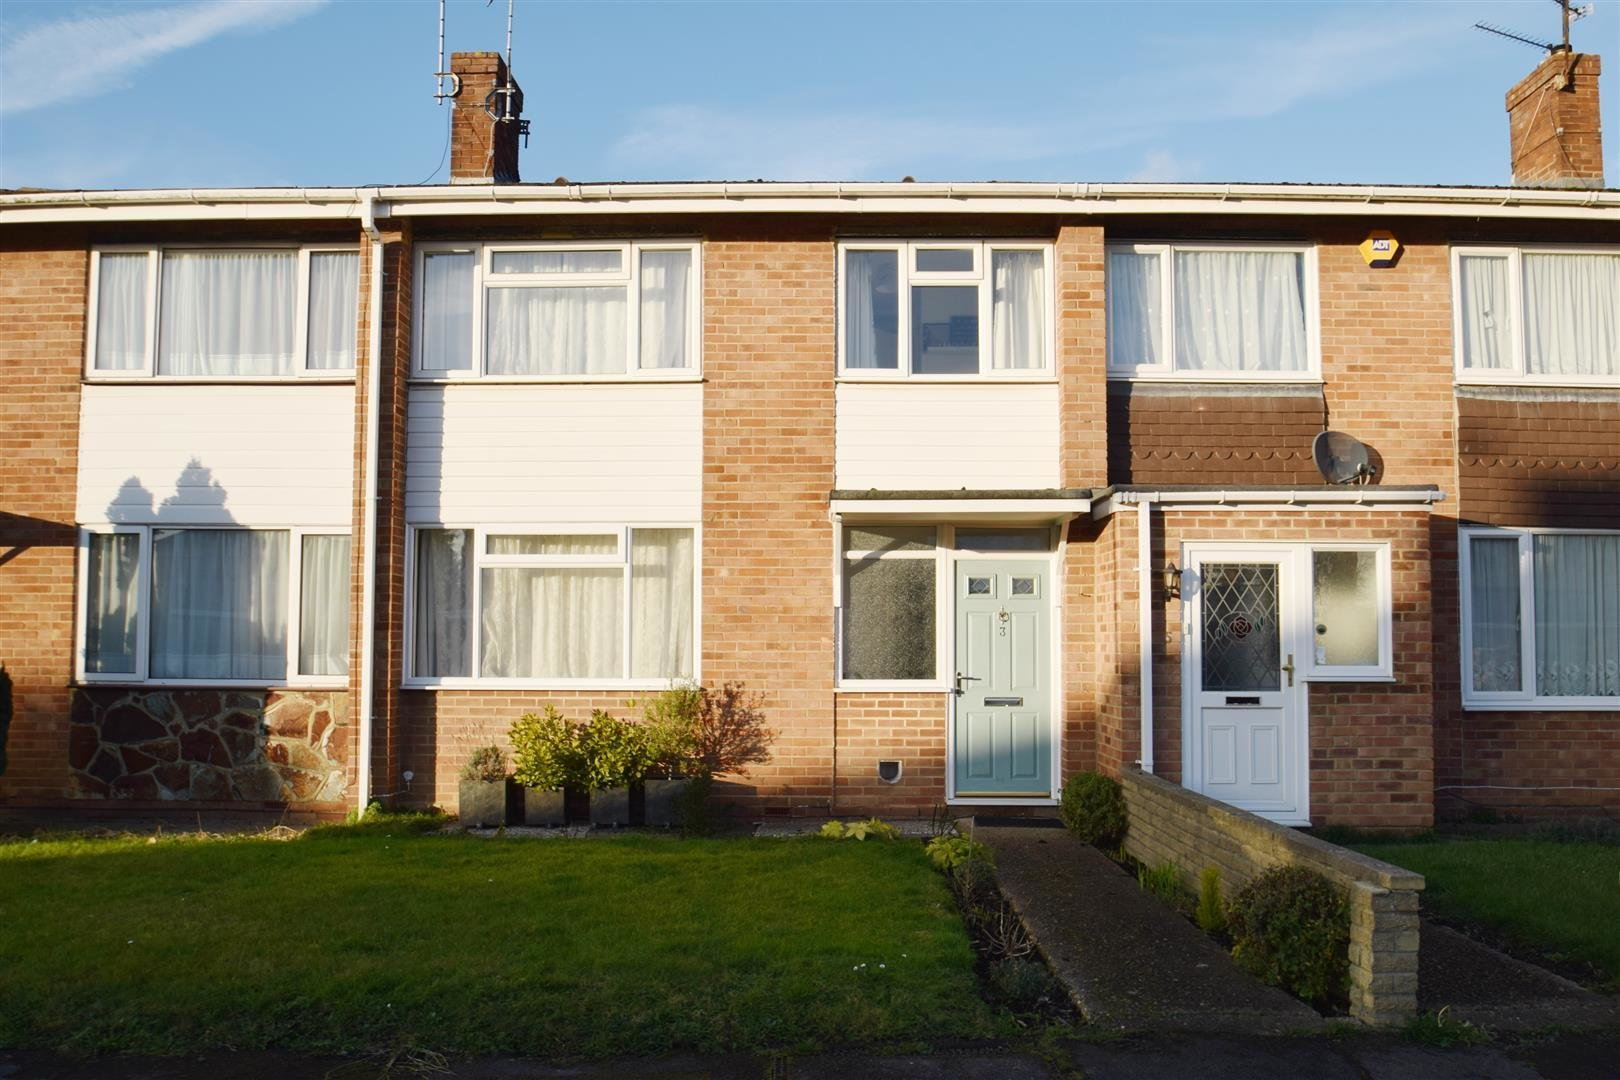 Best 3 Bedroom House For Sale In Reading With Pictures